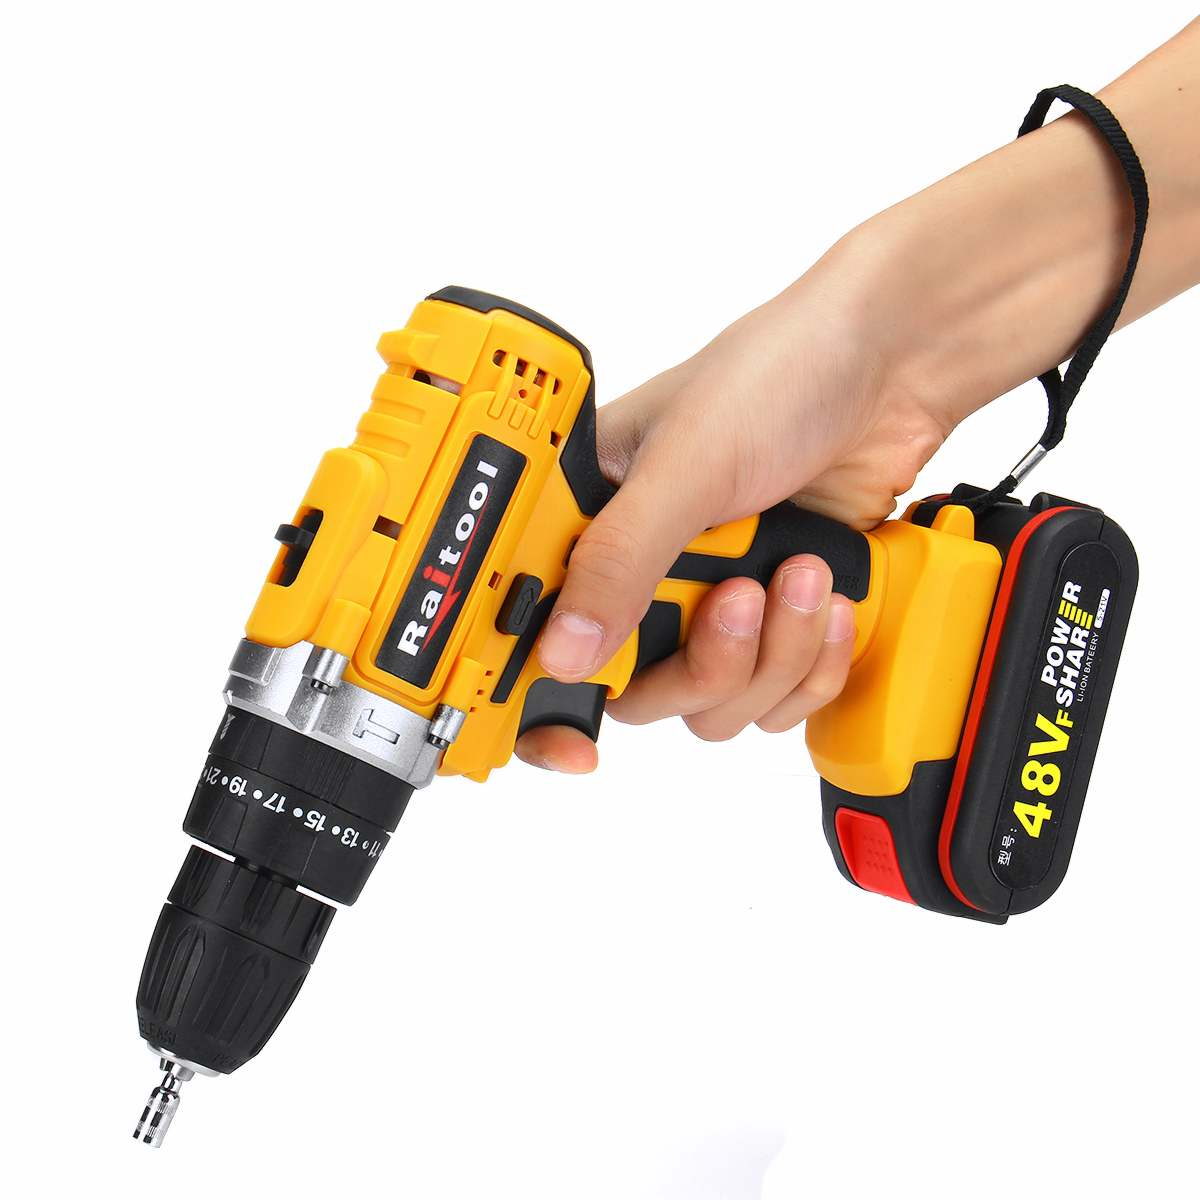 Tools : 3 in 1 48VF 2 Speed Cordless Drill Electric Screwdriver Wireless Power Driver DC Lithium-Ion Battery with LED Light Raitool